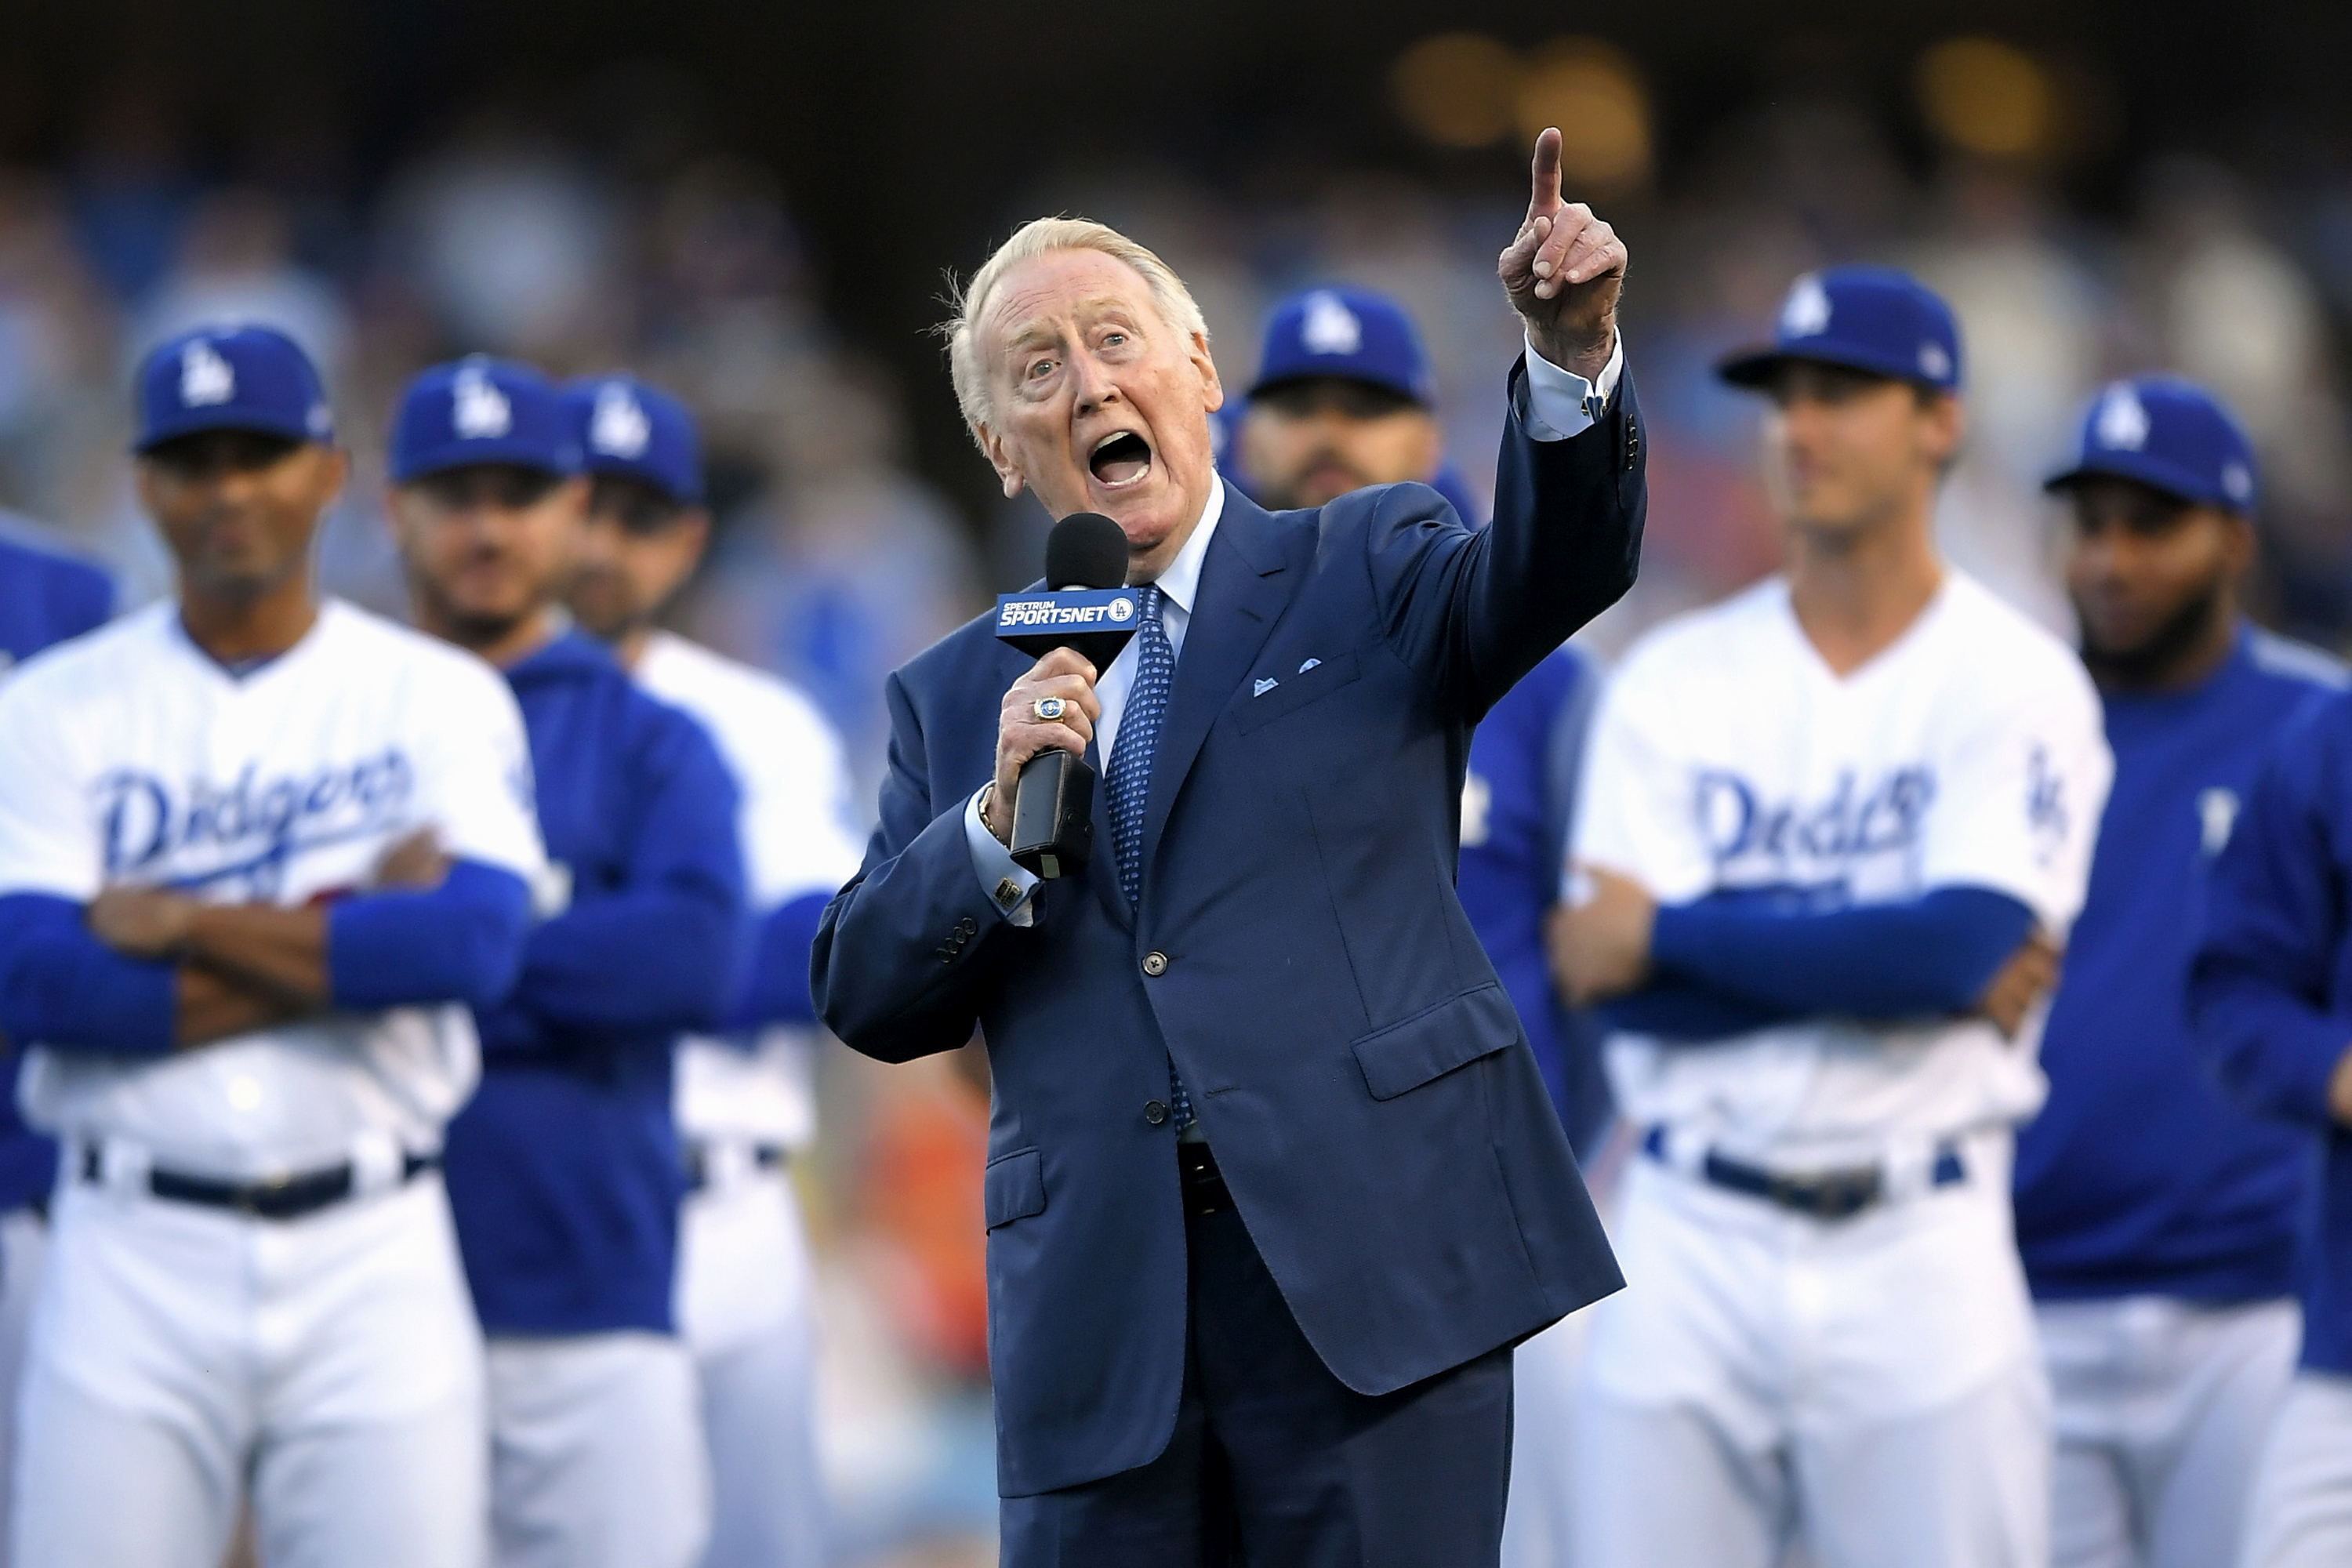 Vin Scully Auctions Off Baseball Memorabilia, Netting More Than $2 Million